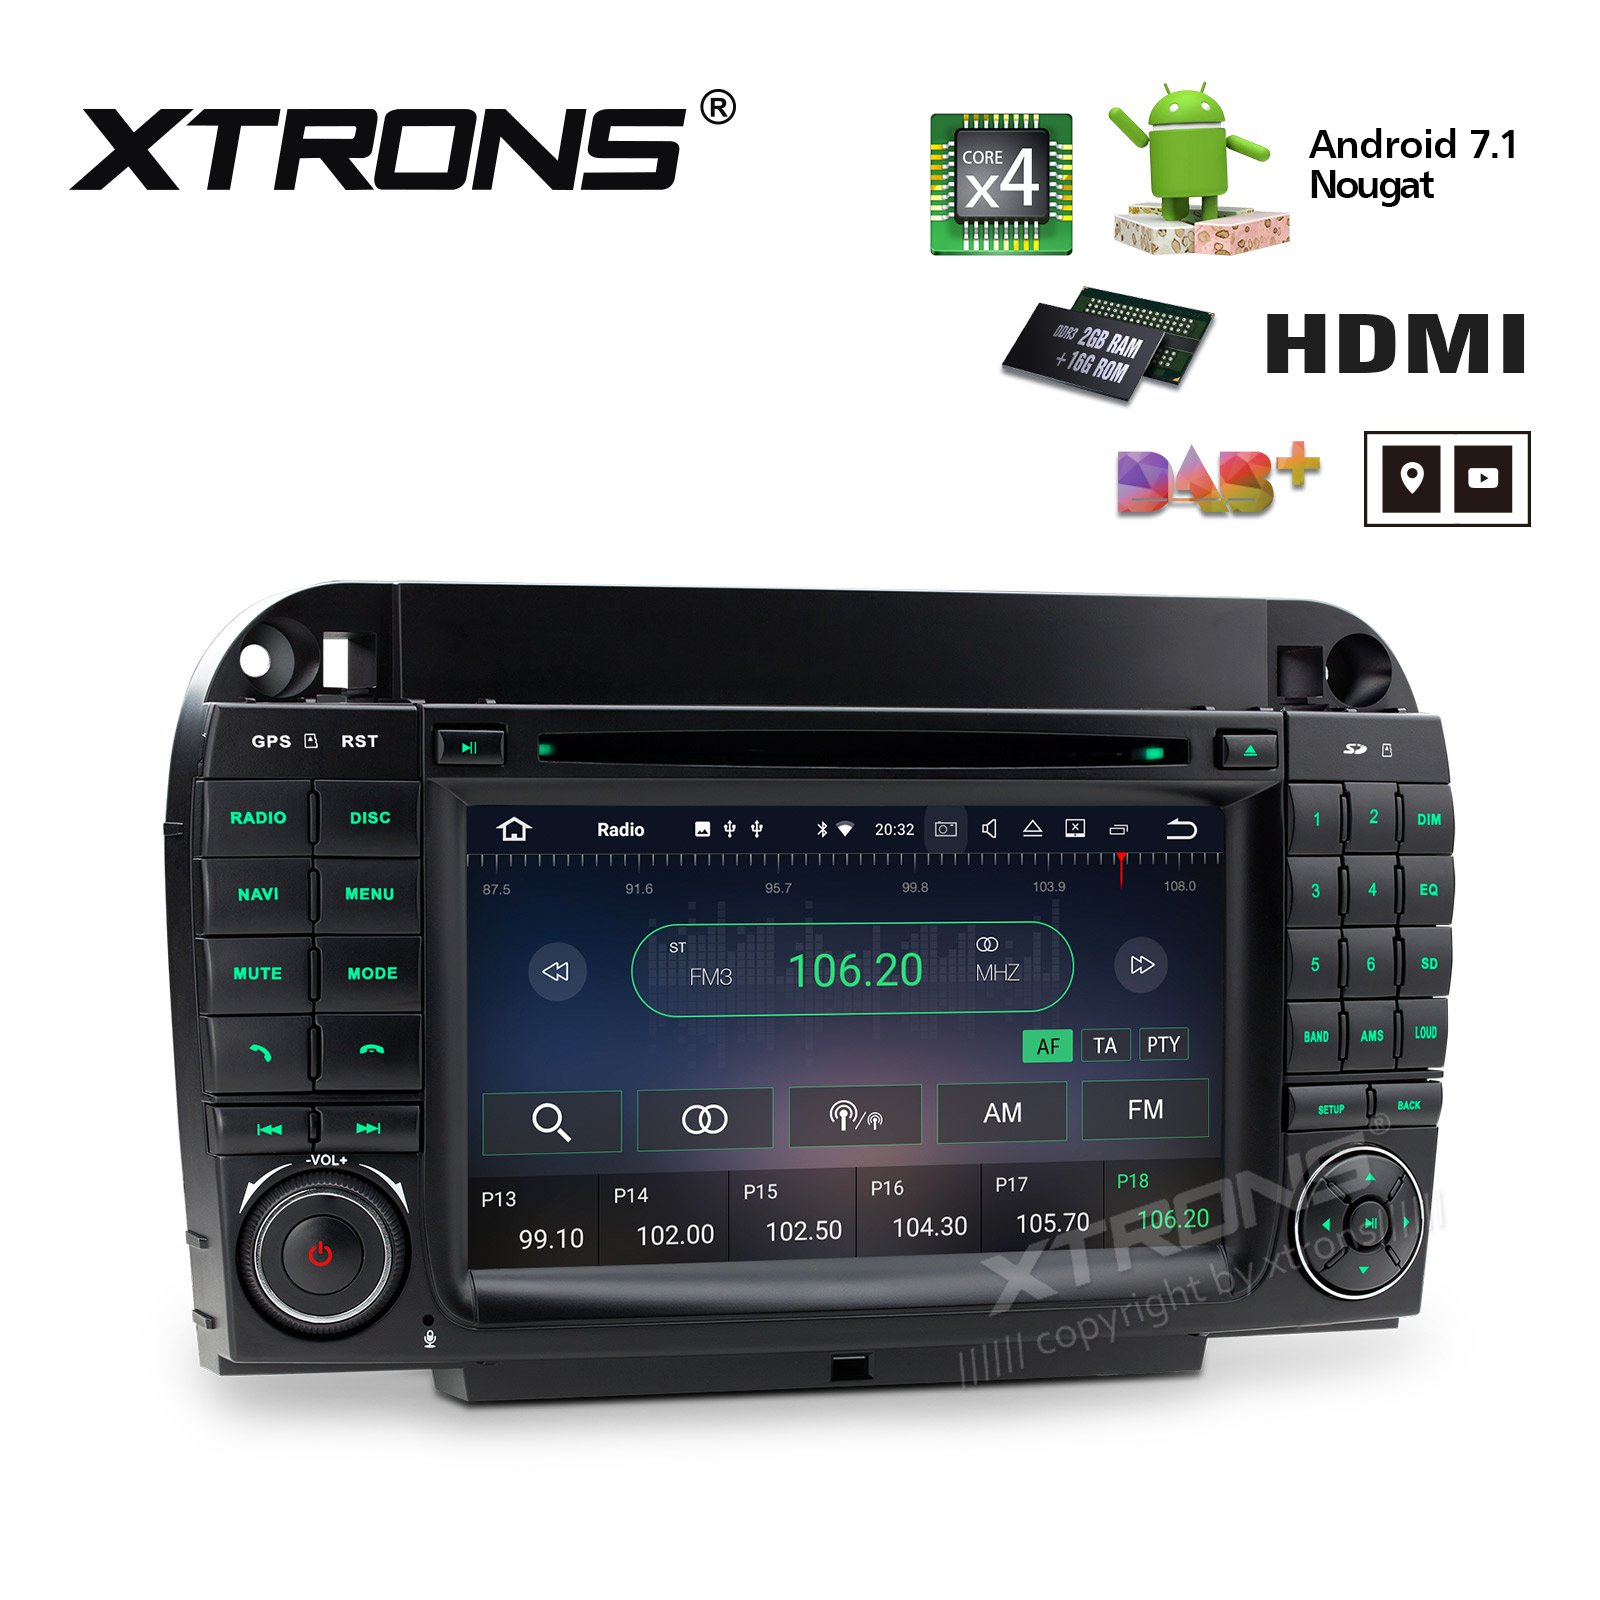 XTRONS HDMI Android 7.1 Quad Core 7 Inch HD Digital Touch Screen Car Stereo Radio DVD Player GPS for Benz S-W220/S280/S320/430/S500 1998-2005